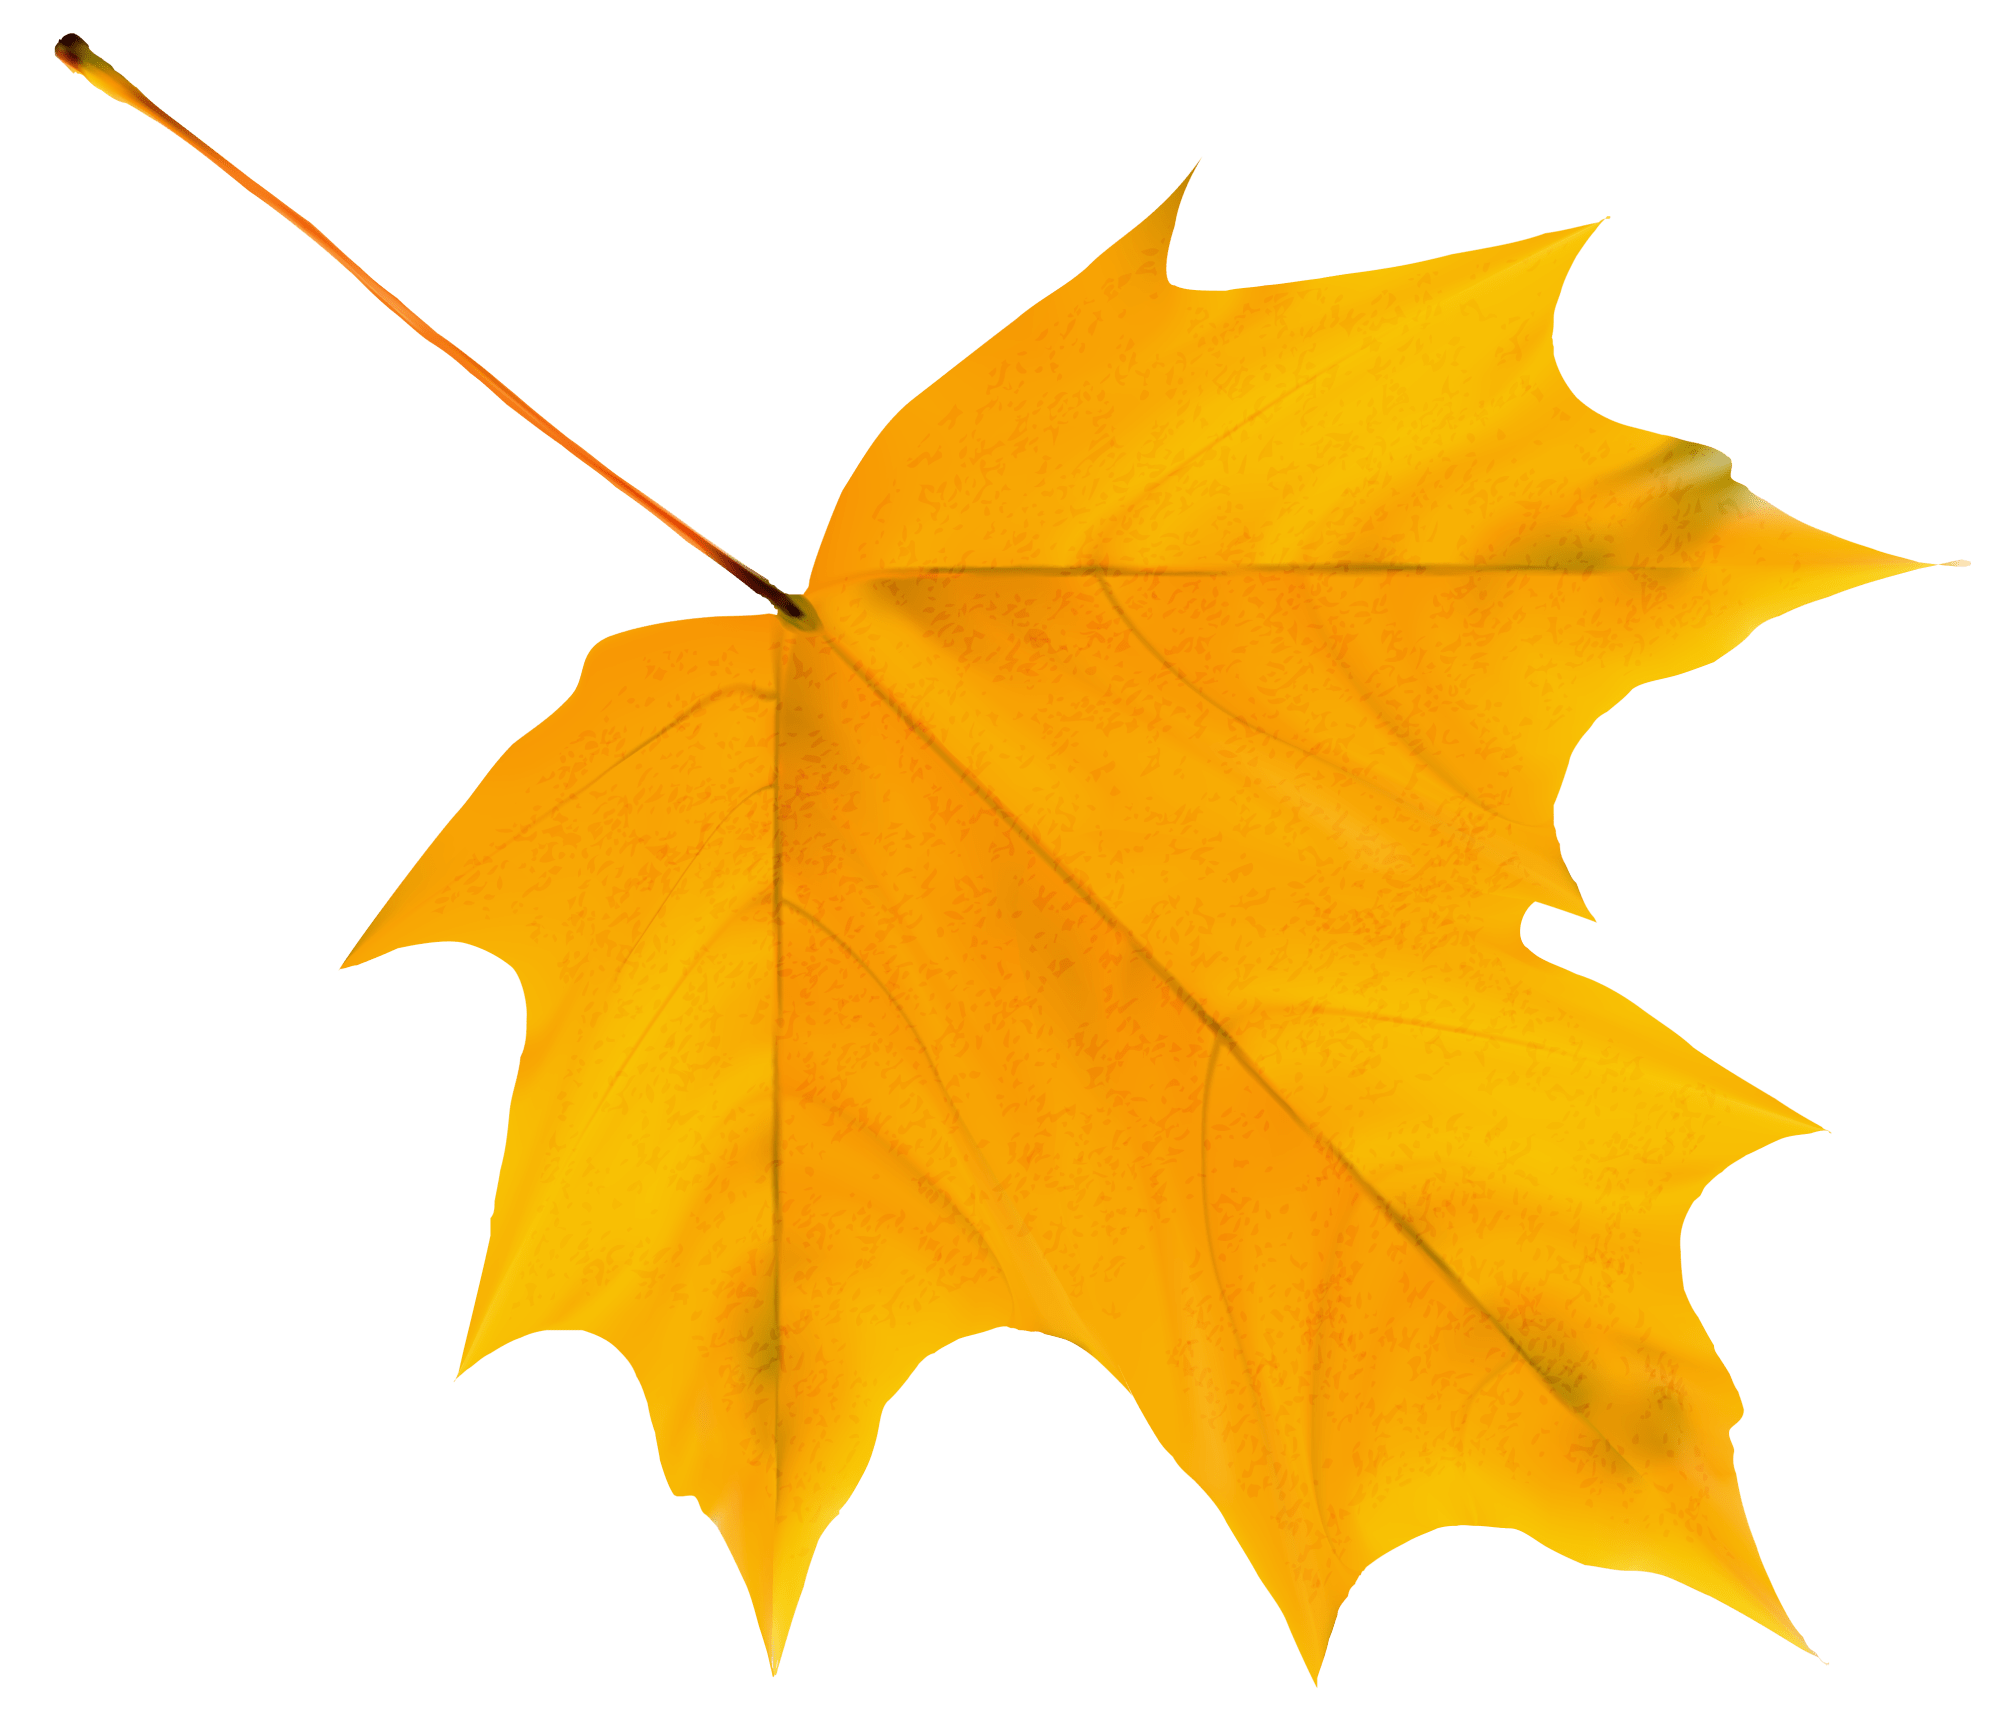 hight resolution of fall leaf png yellow autumn clipart image